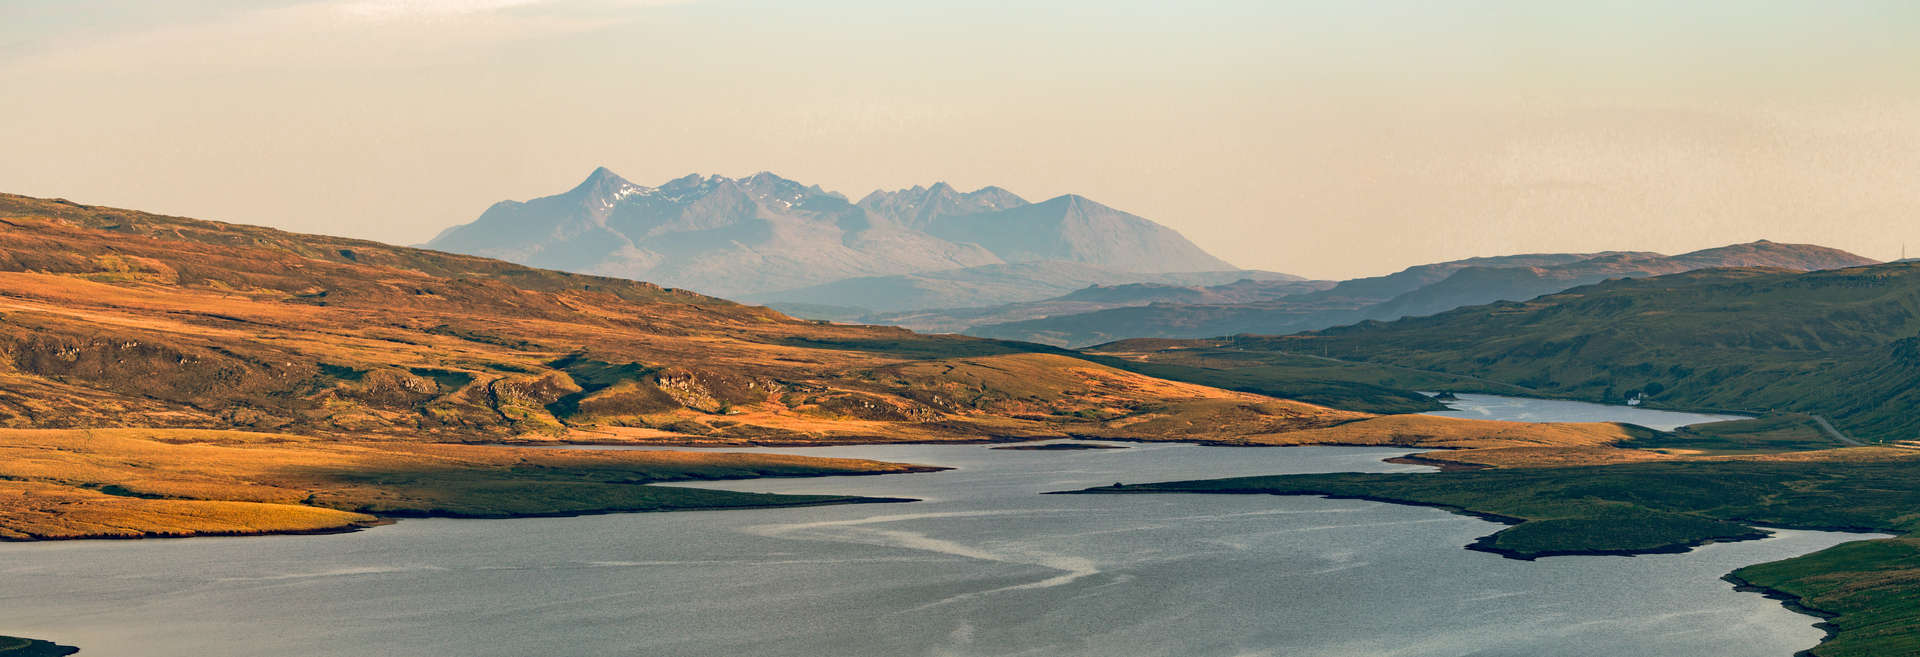 View of the Cuillin Mountains, Isle of Skye